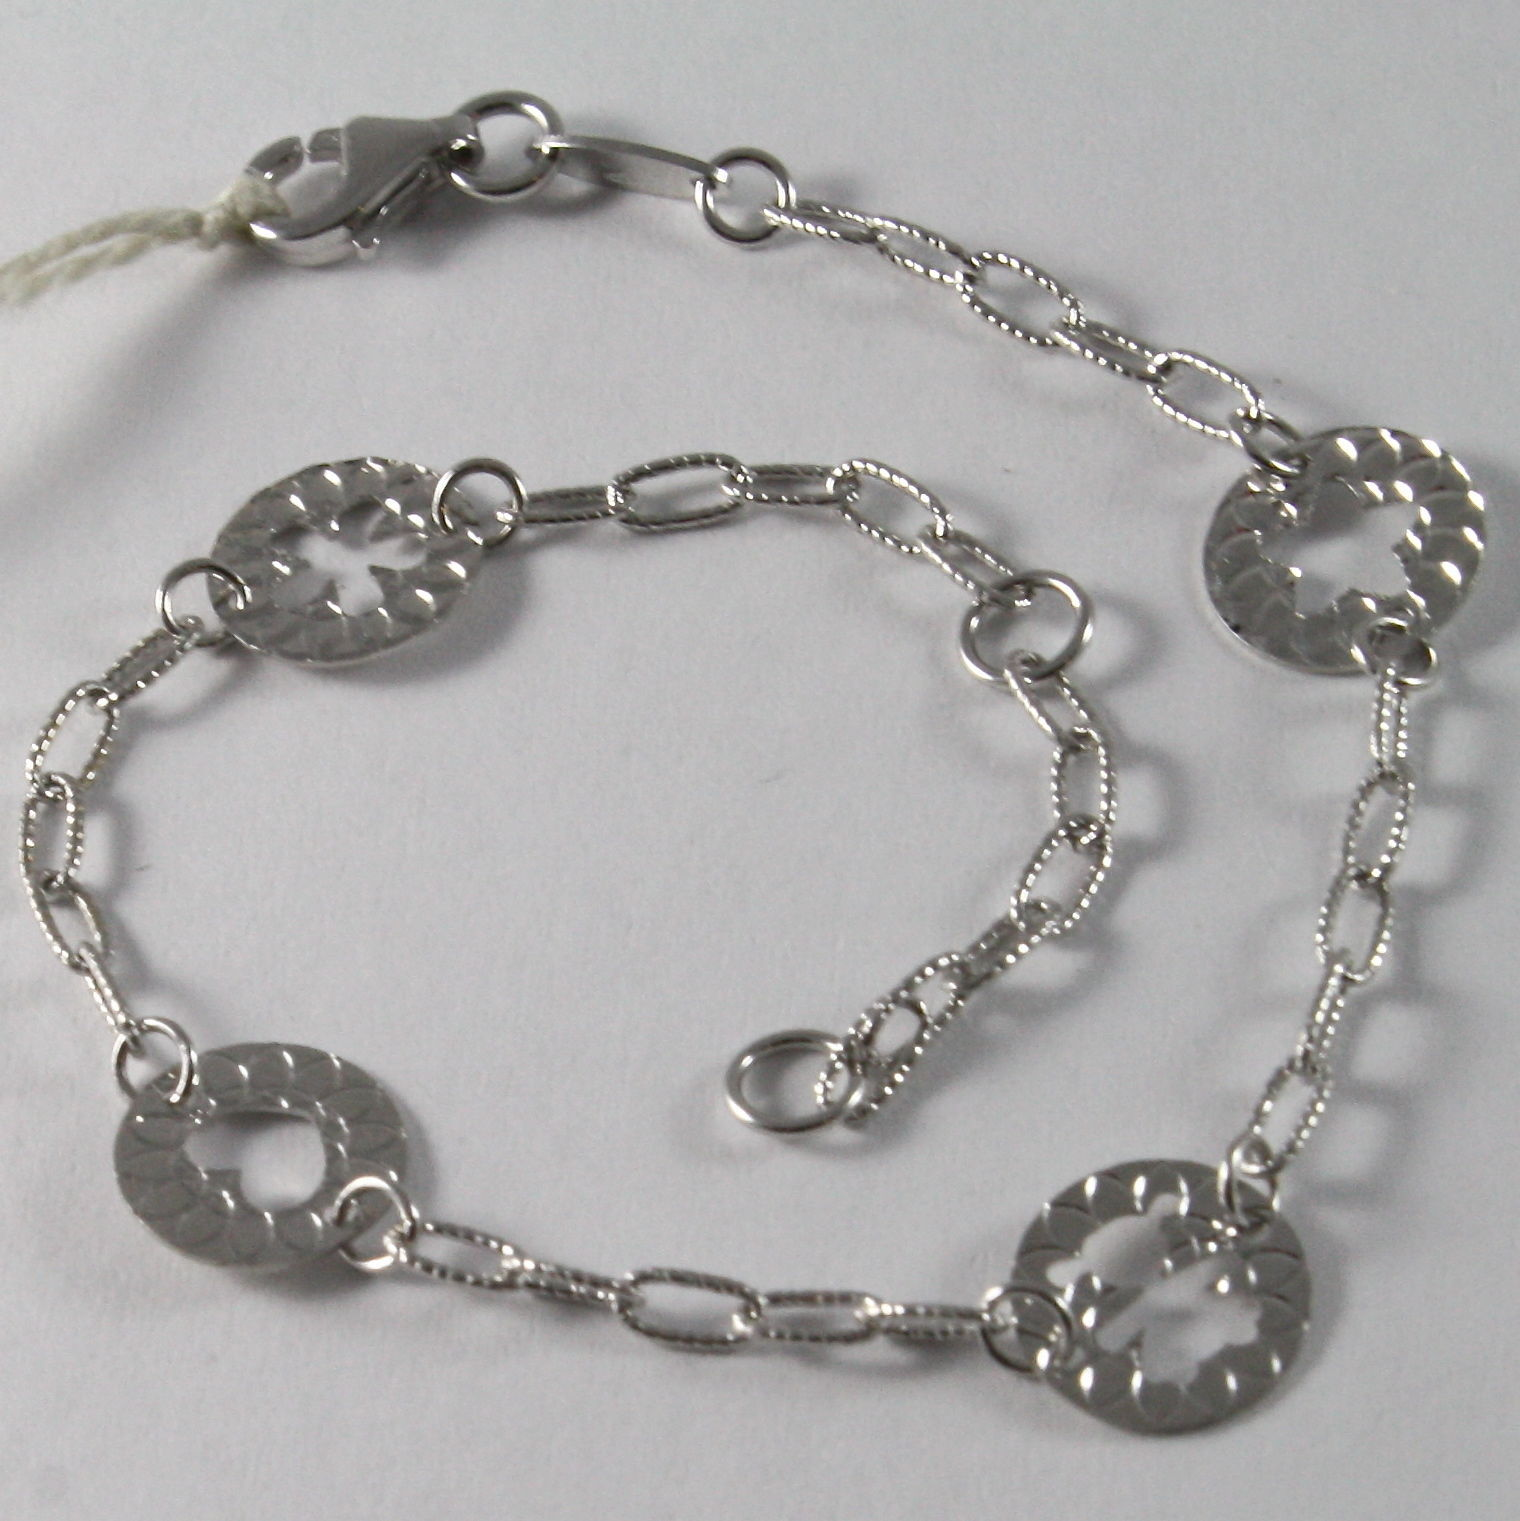 SOLID 18K WHITE GOLD BRACELET WITH STAR, GIRL, FLOWER, HEART, MADE IN ITALY